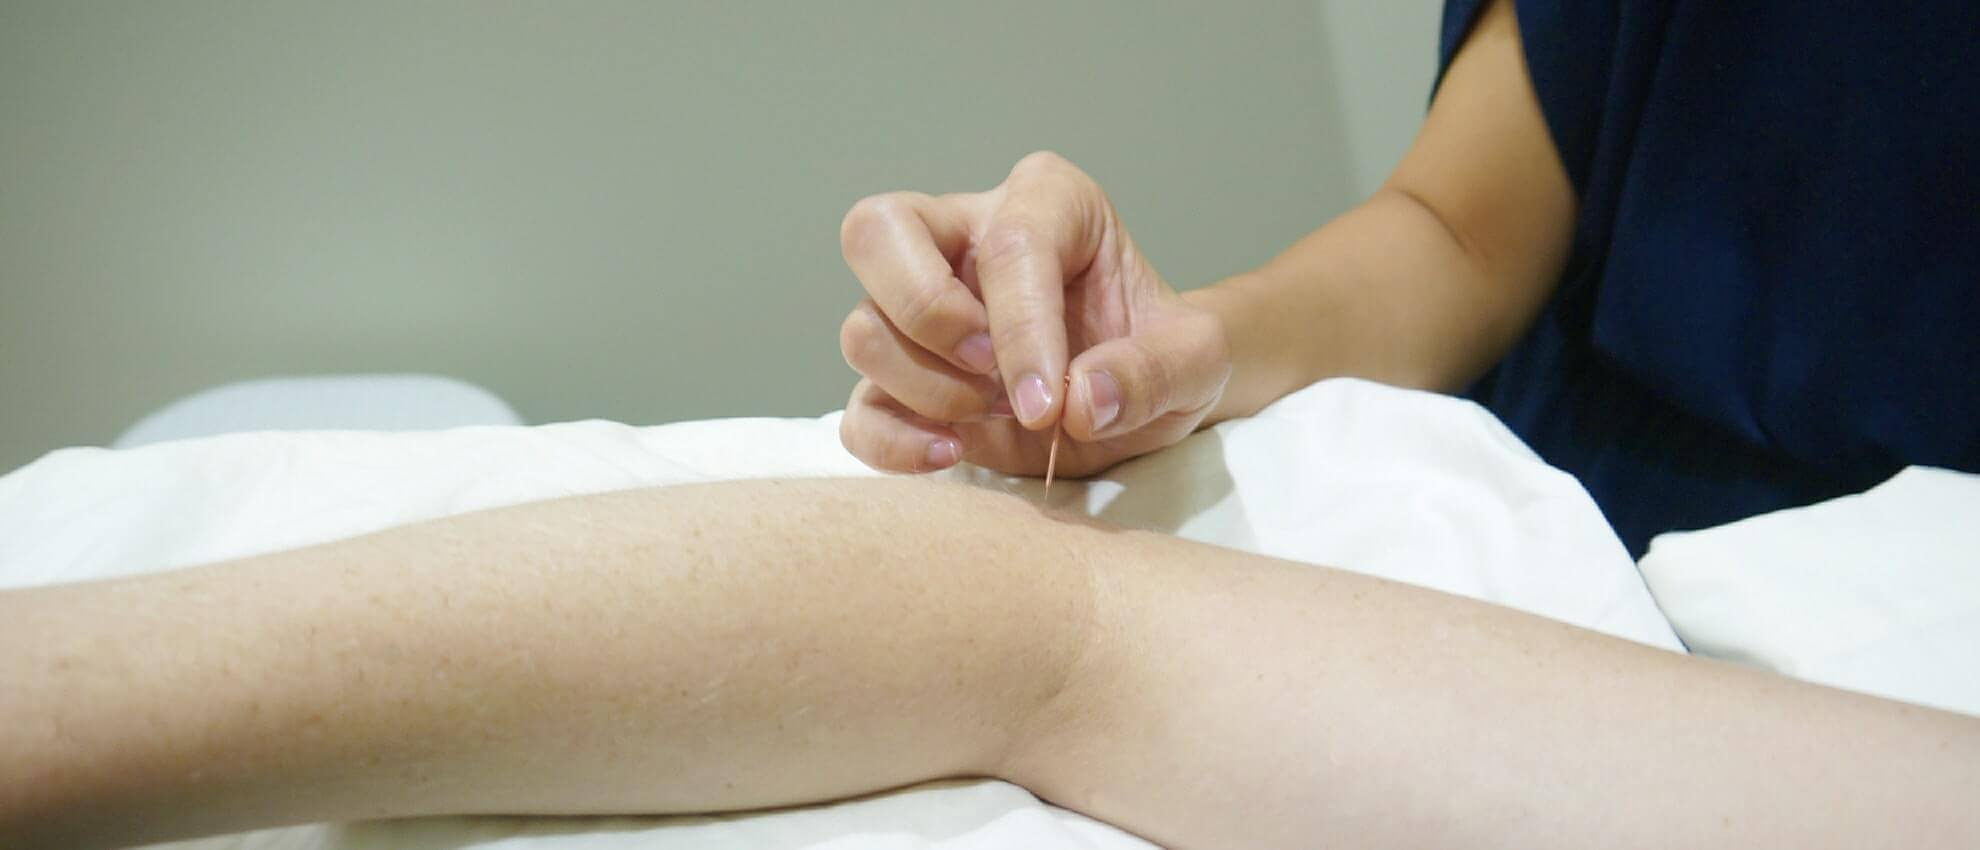 IMS treatment for elbow pain